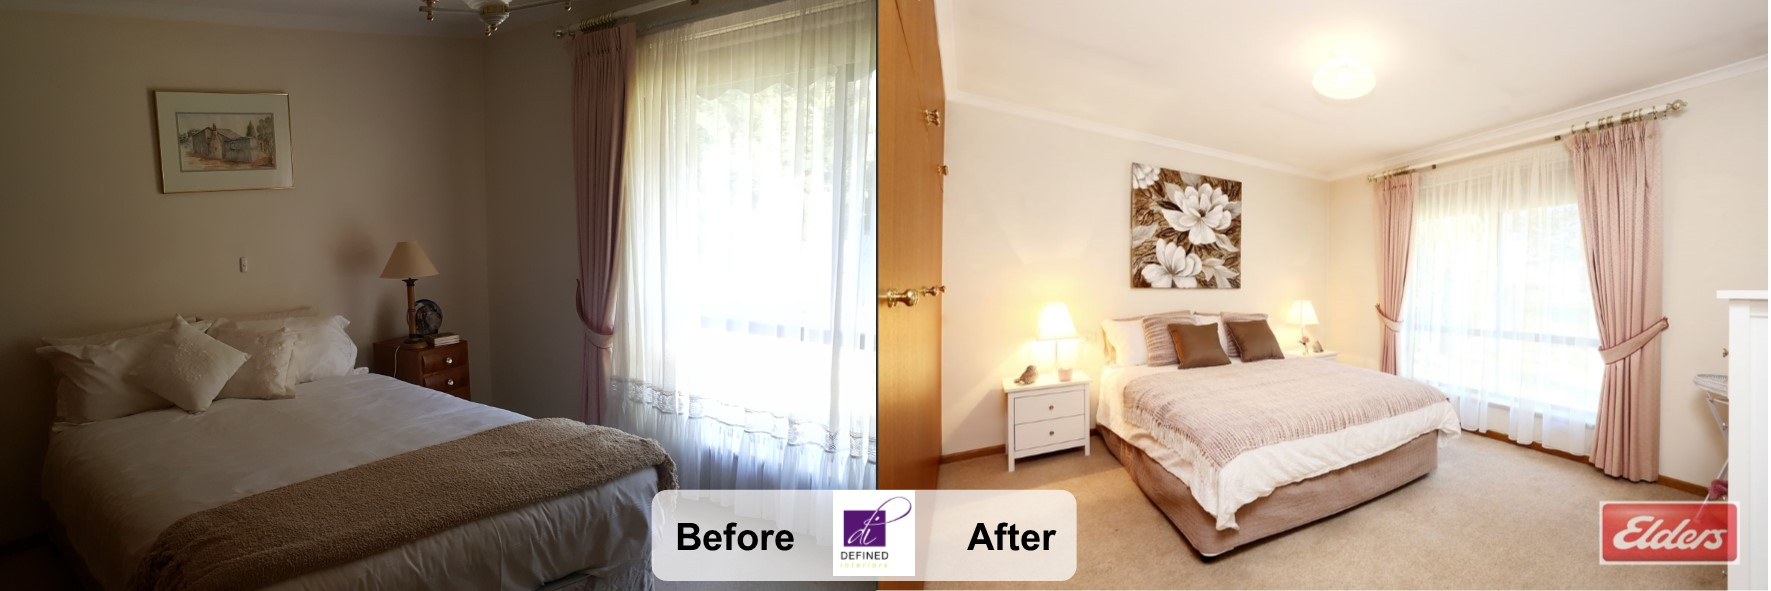 before-and-after2